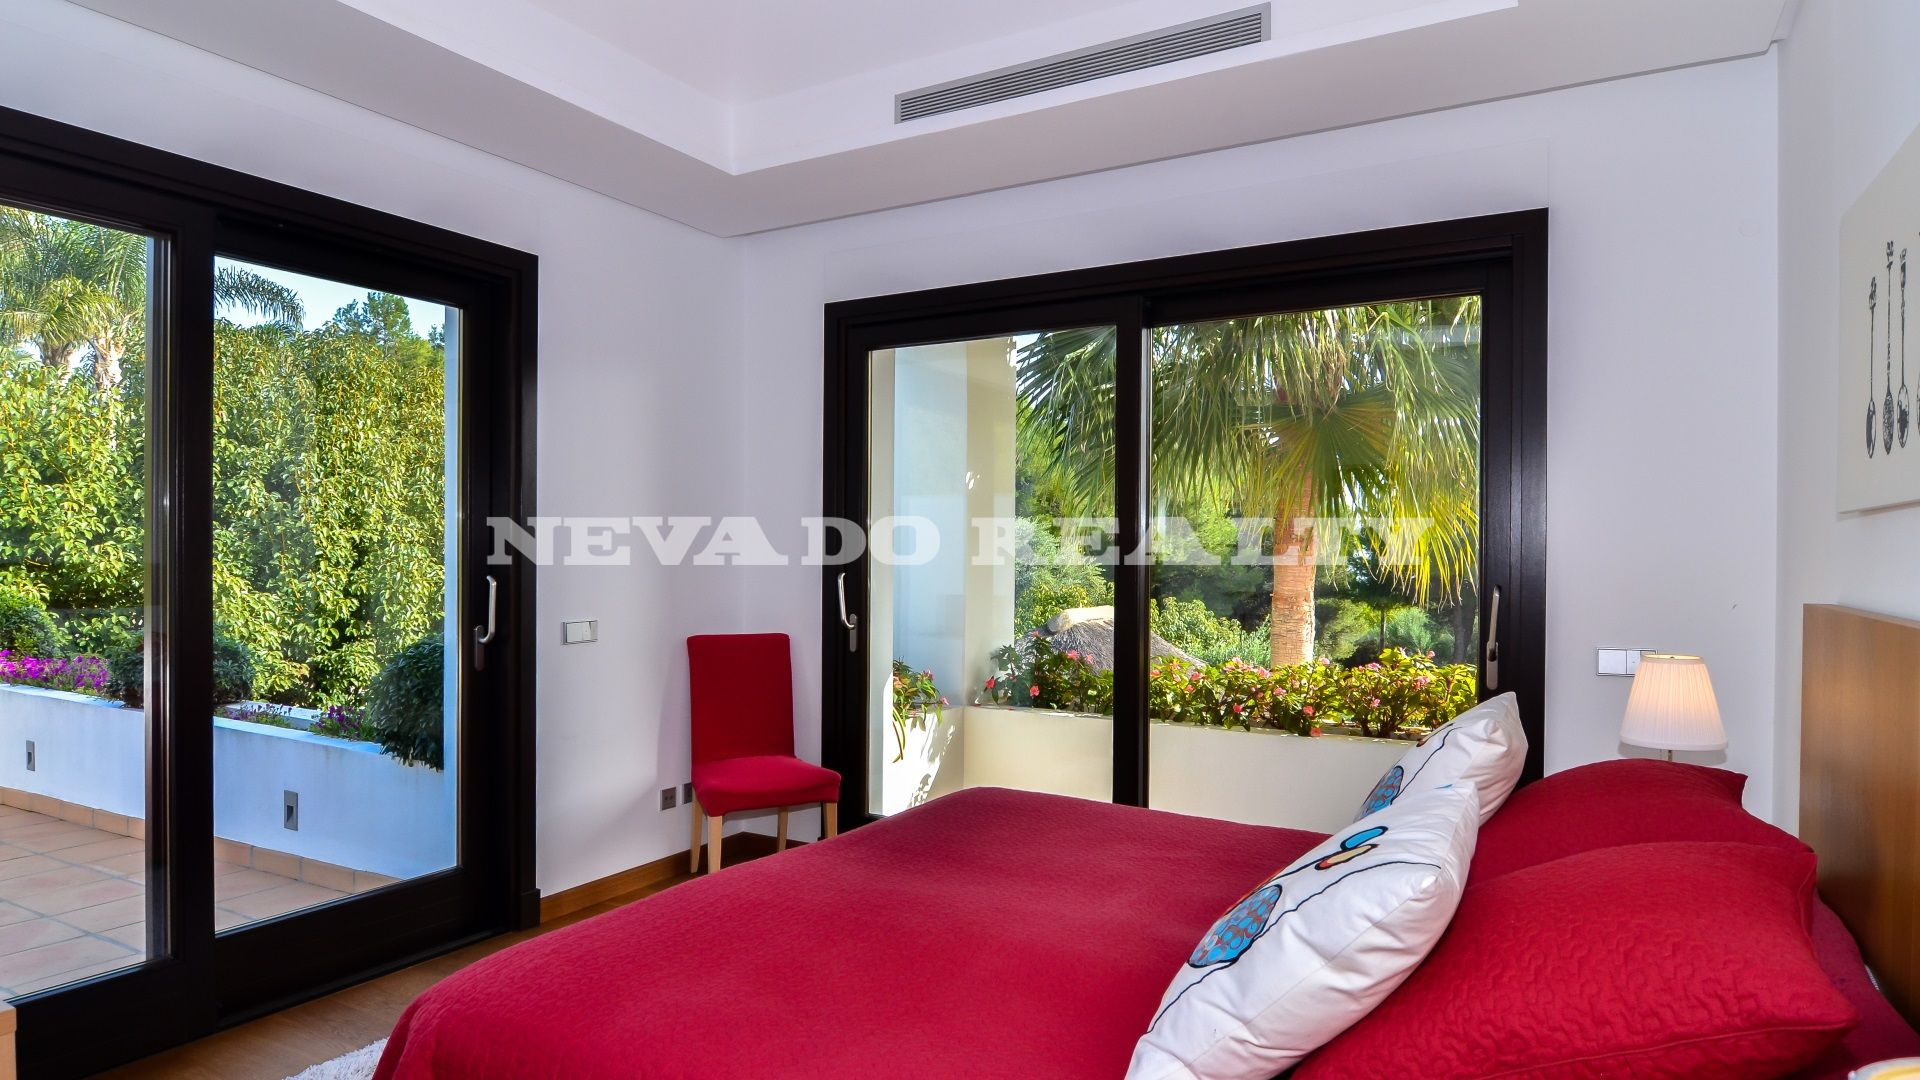 Lovely villa for sale in Altos Reales, privacy and stylish details